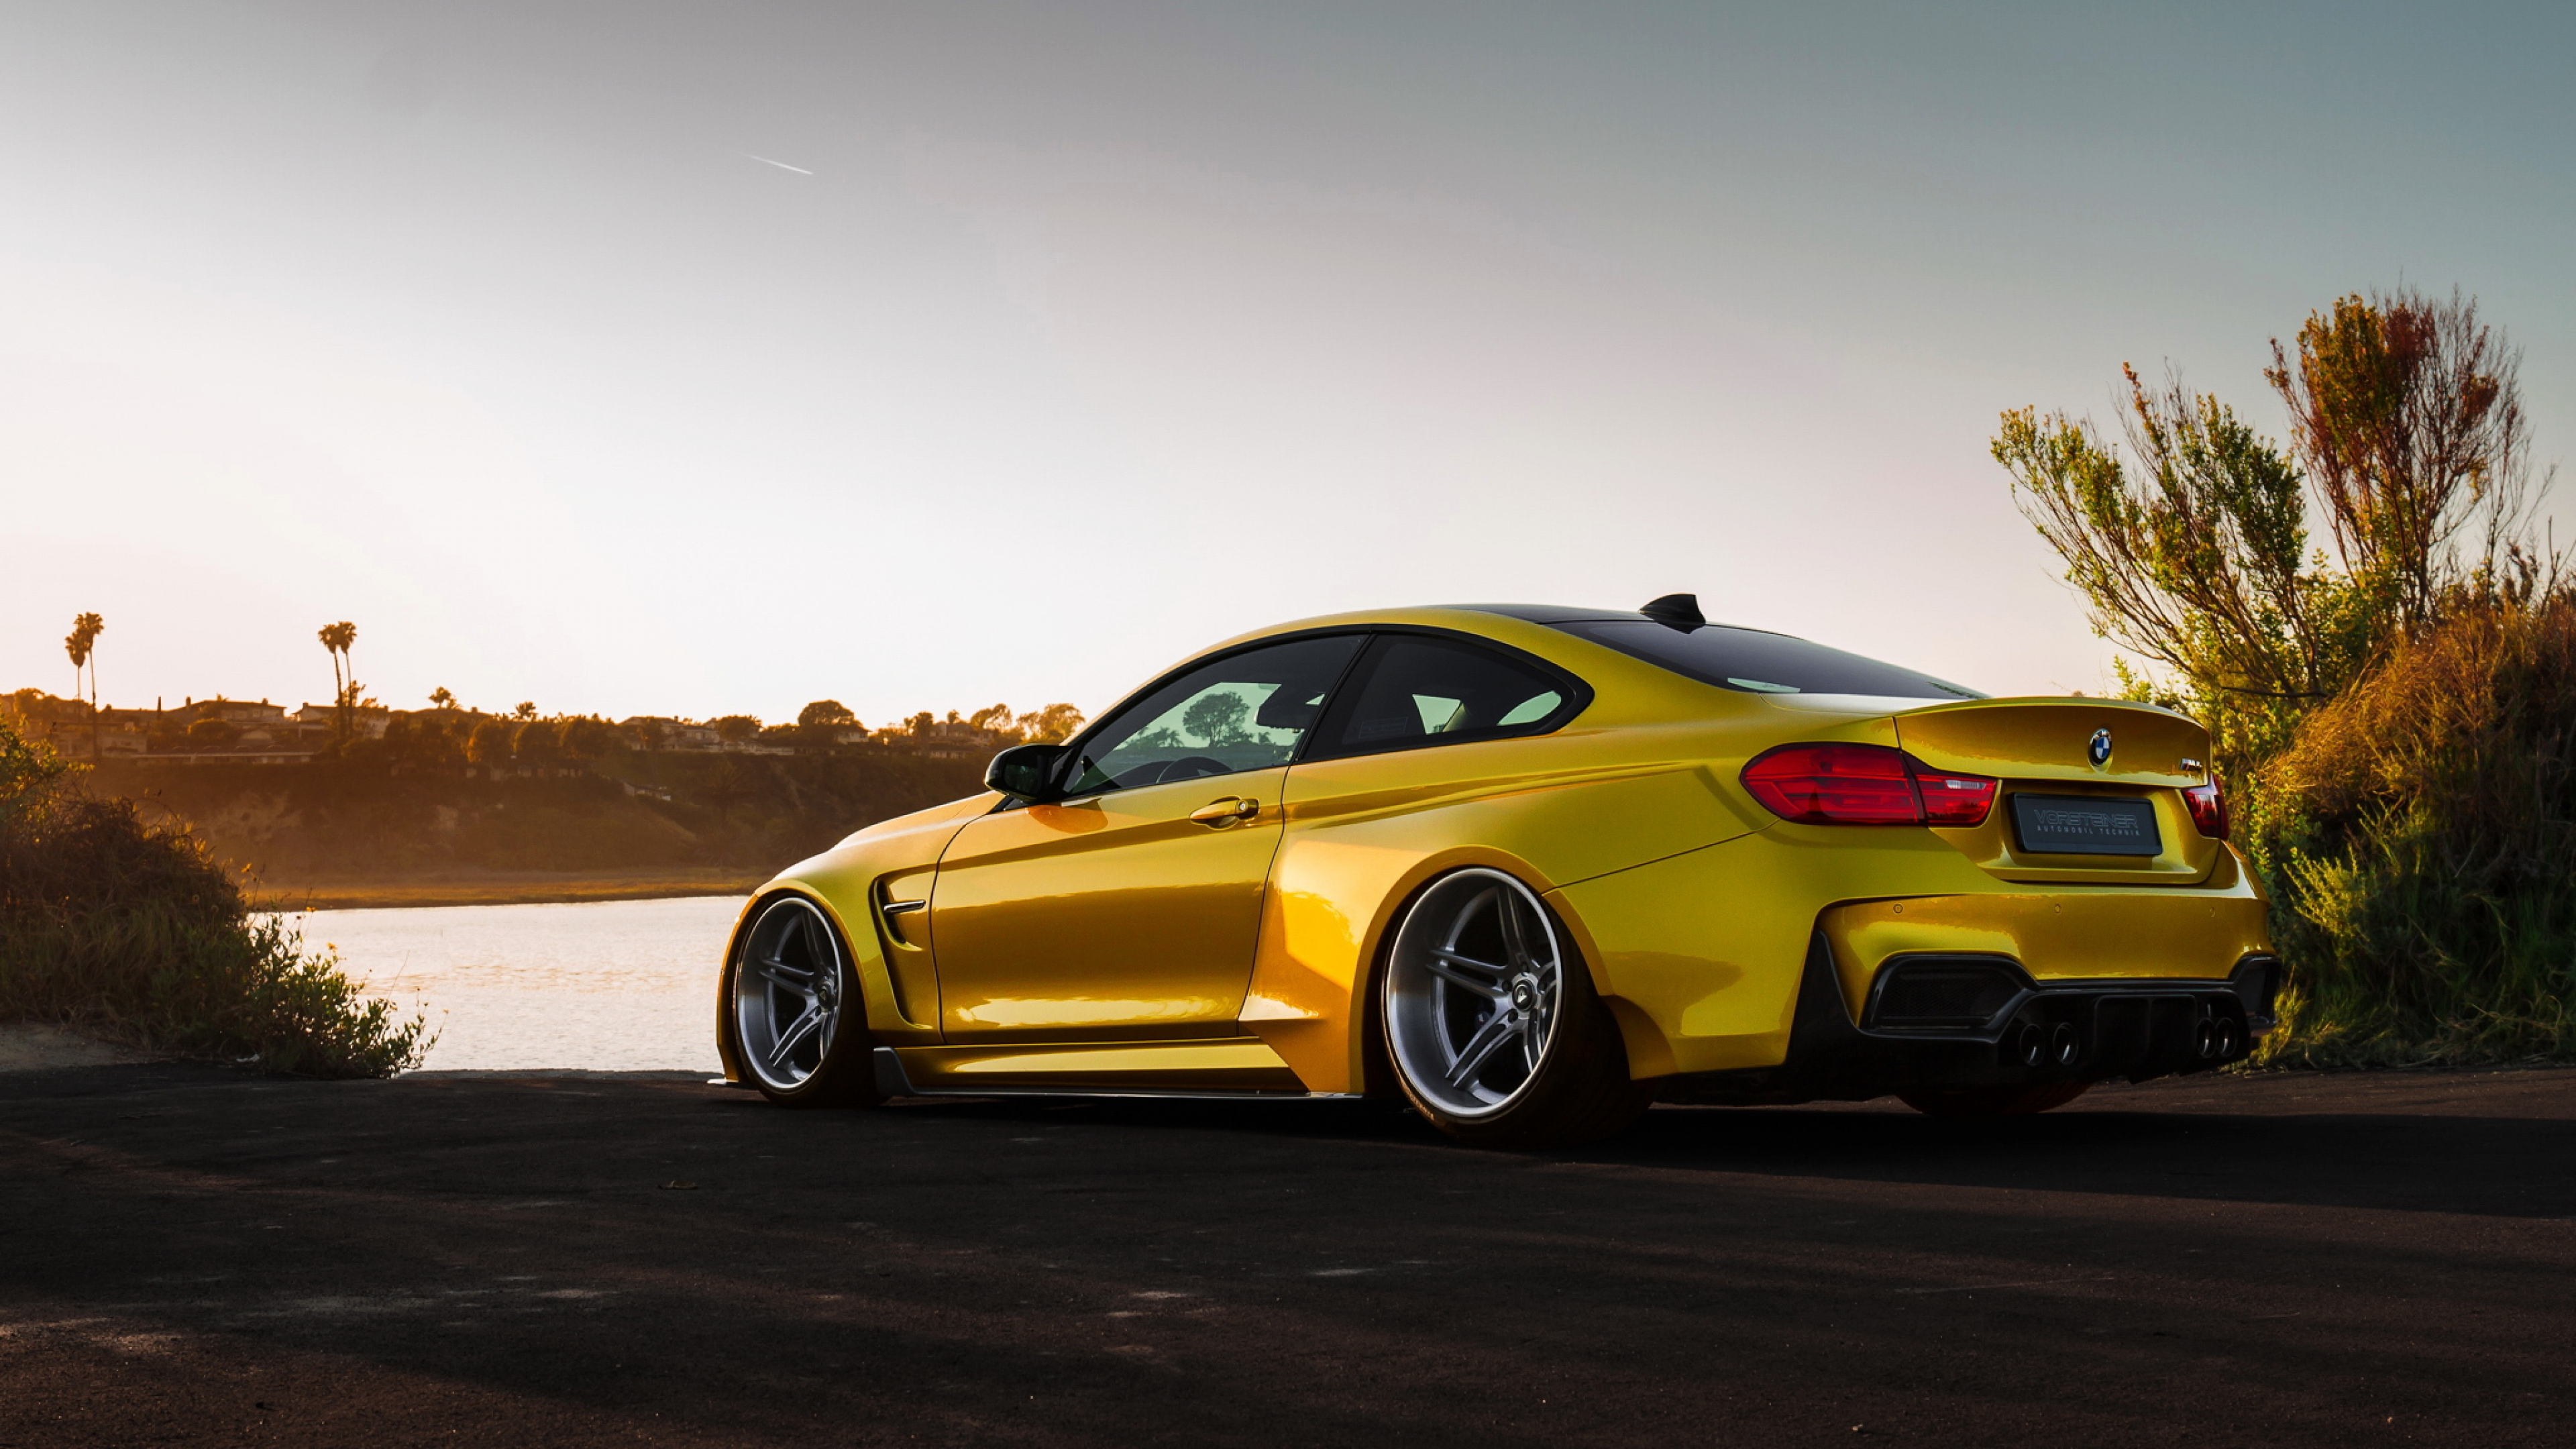 3840x2160 - BMW M4 Wallpapers 3